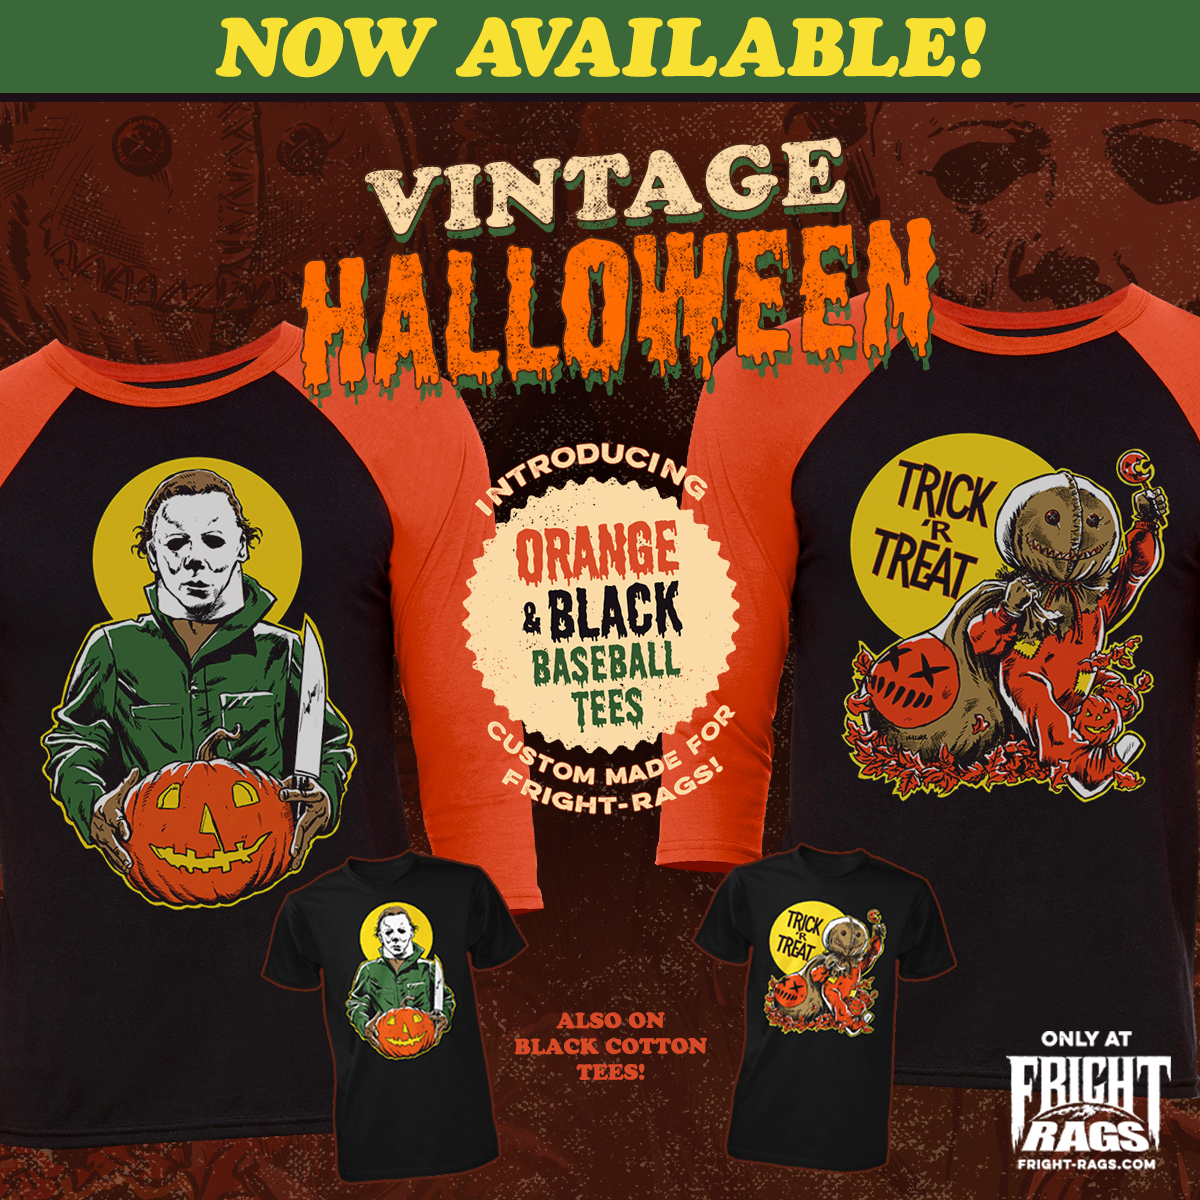 VINTAGE HALLOWEEN - For the Vintage Halloween collection, Fright-Rags enlisted Nathan Thomas Milliner to illustrate two heavyweights of Halloween horror - Halloween's Michael Myers and Trick 'r Treat's Sam - in the style of vintage decorations. Each design is available on custom-made black and orange baseball tees as well as regular T-shirts.